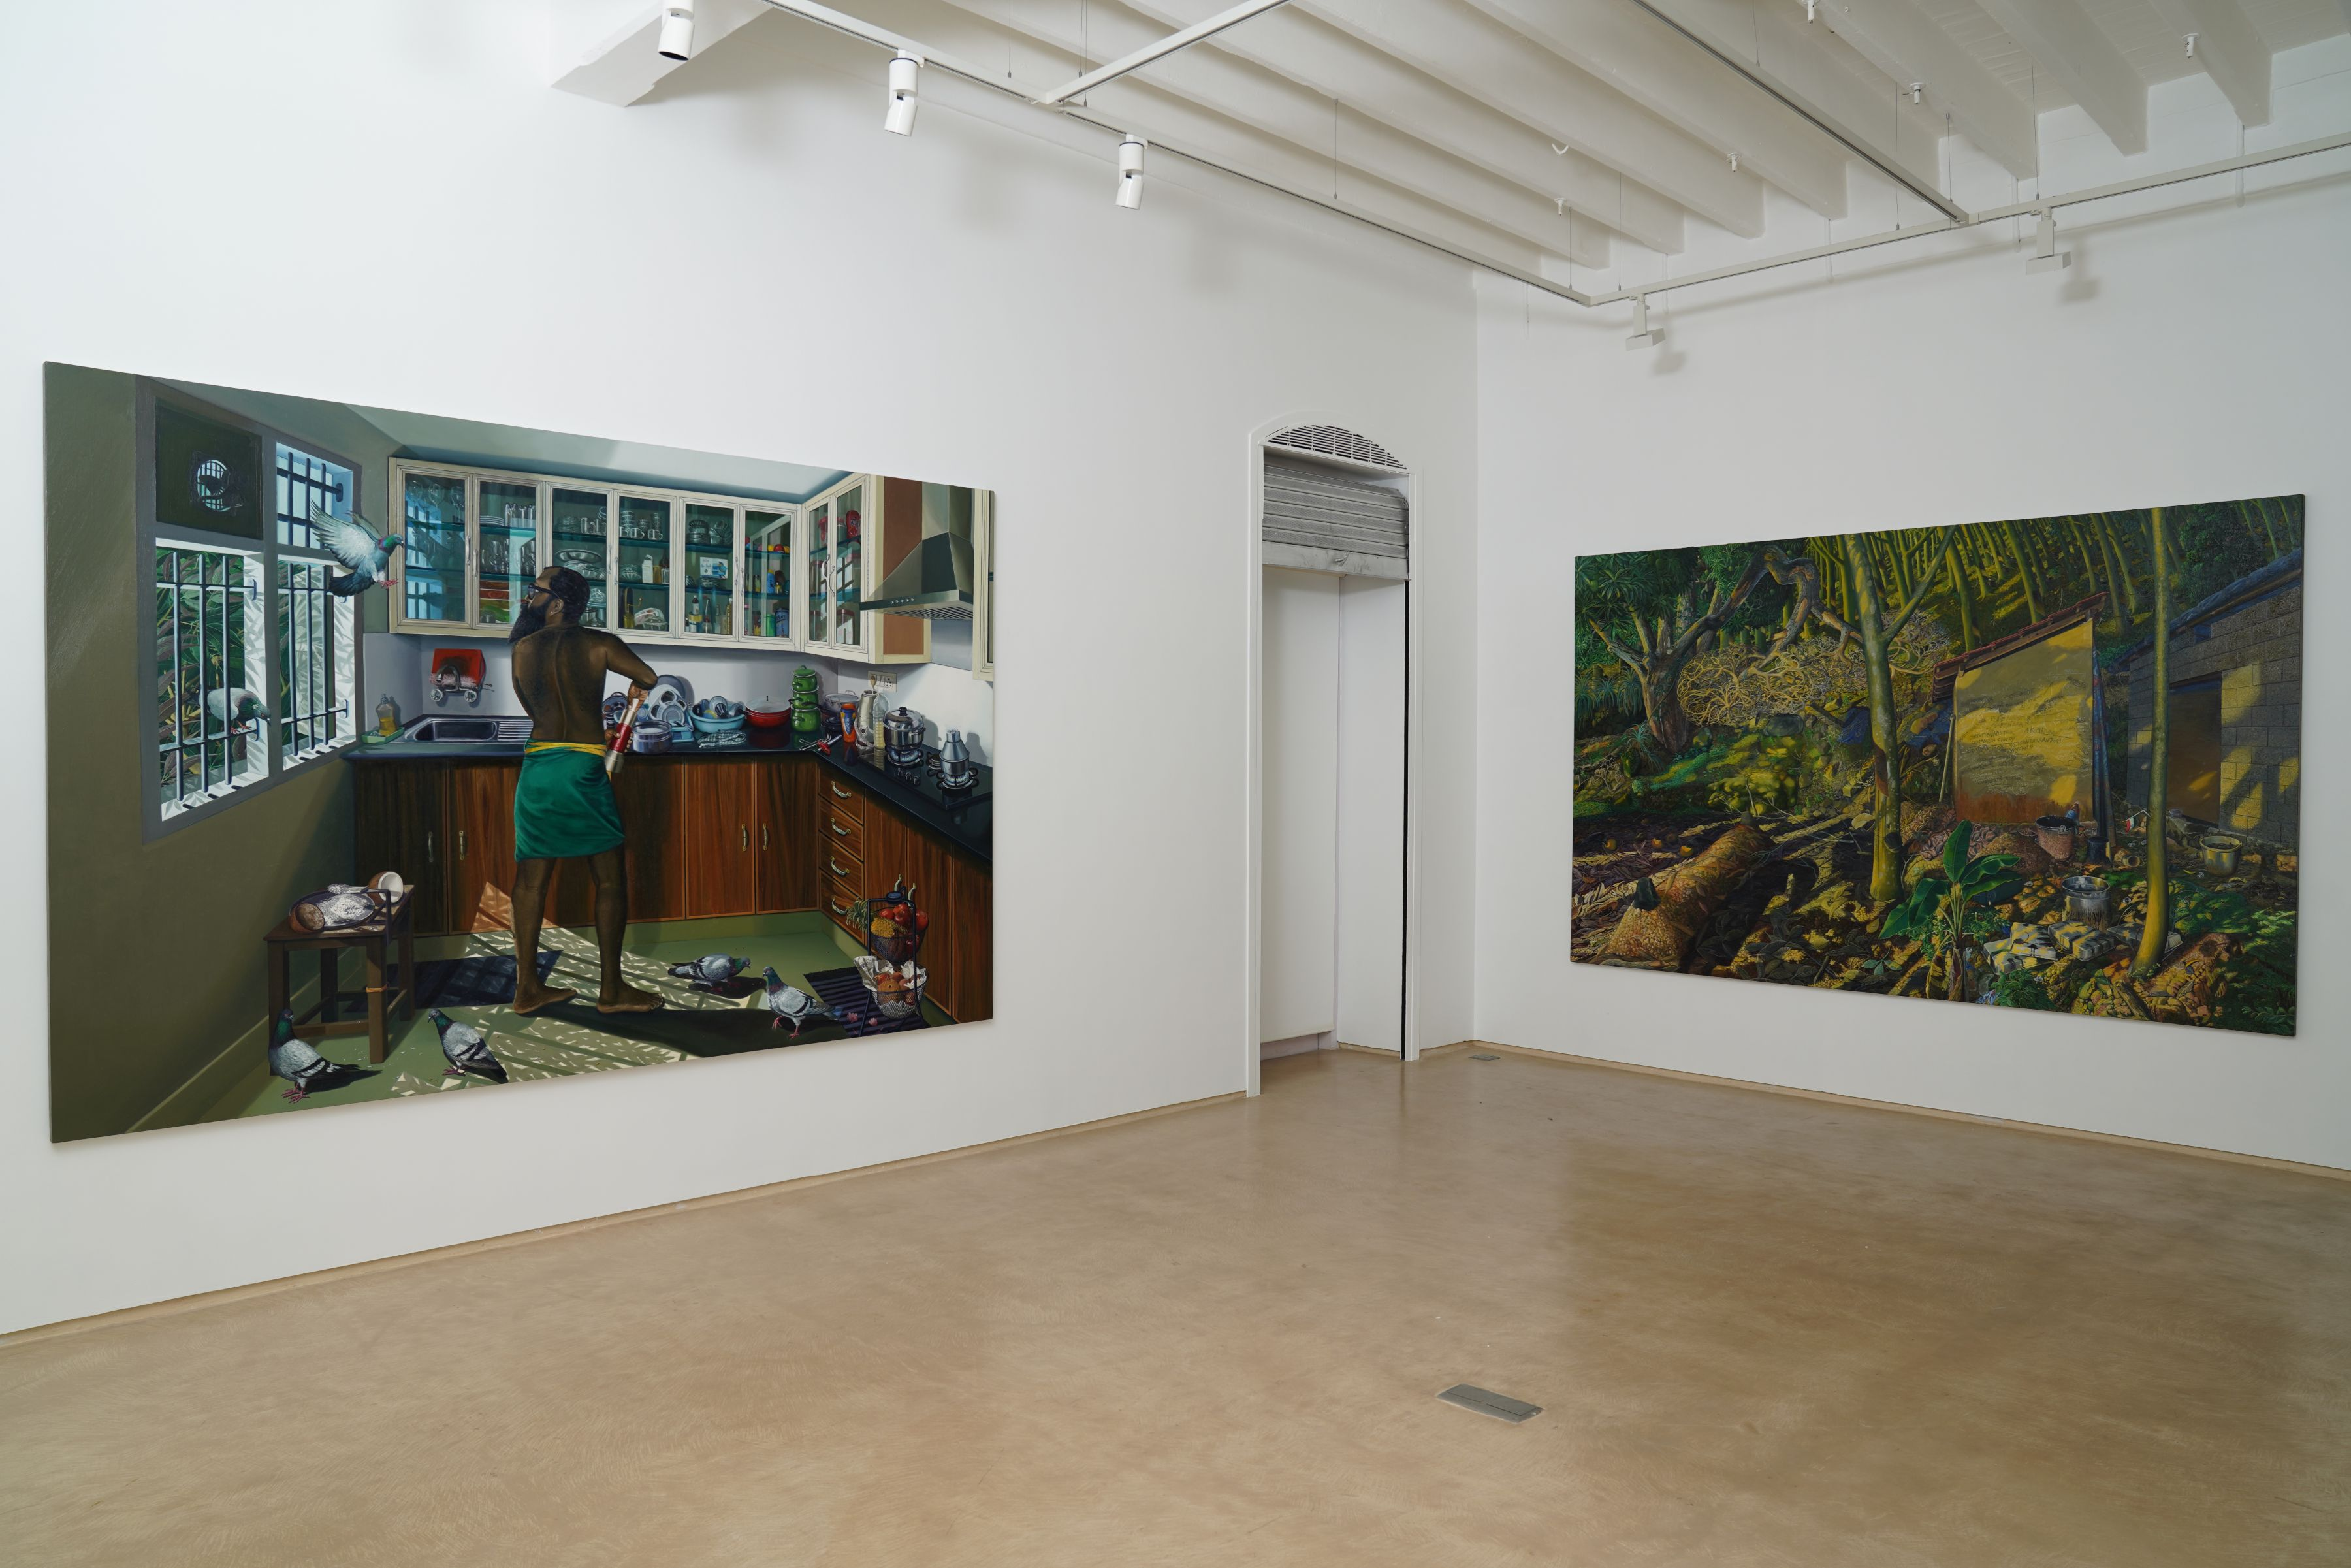 Installation View 2018